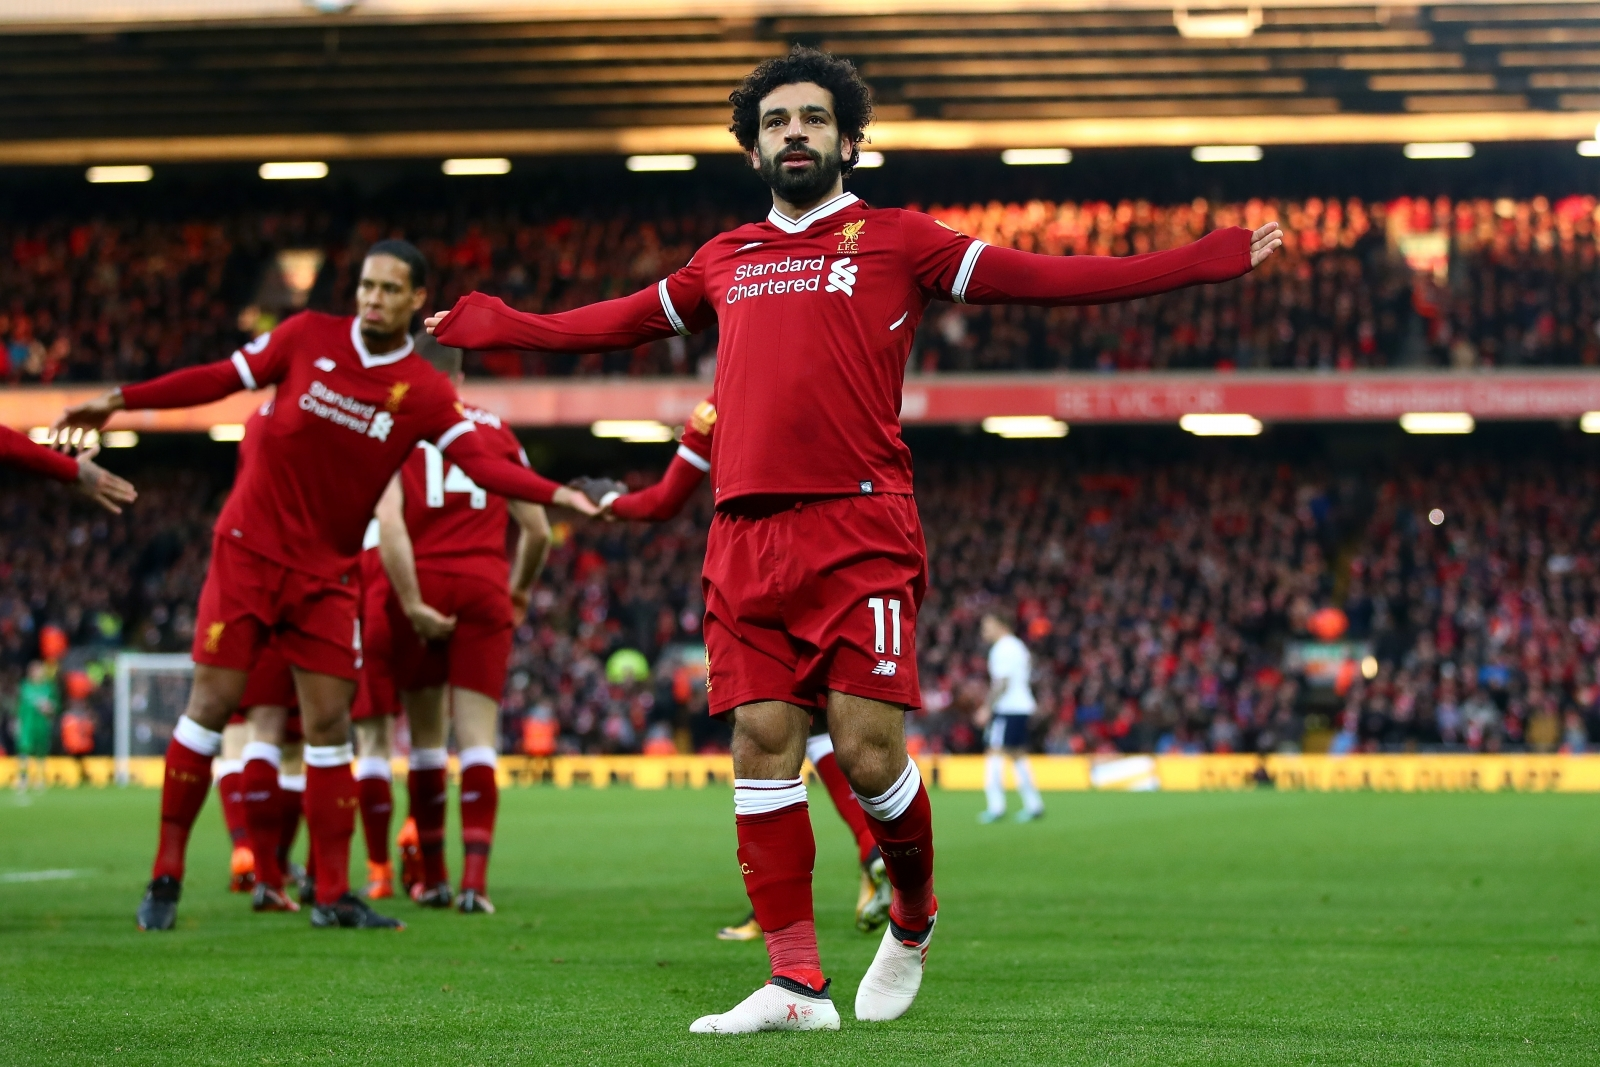 Liverpool Cannot Afford To Sell Mohamed Salah So Soon